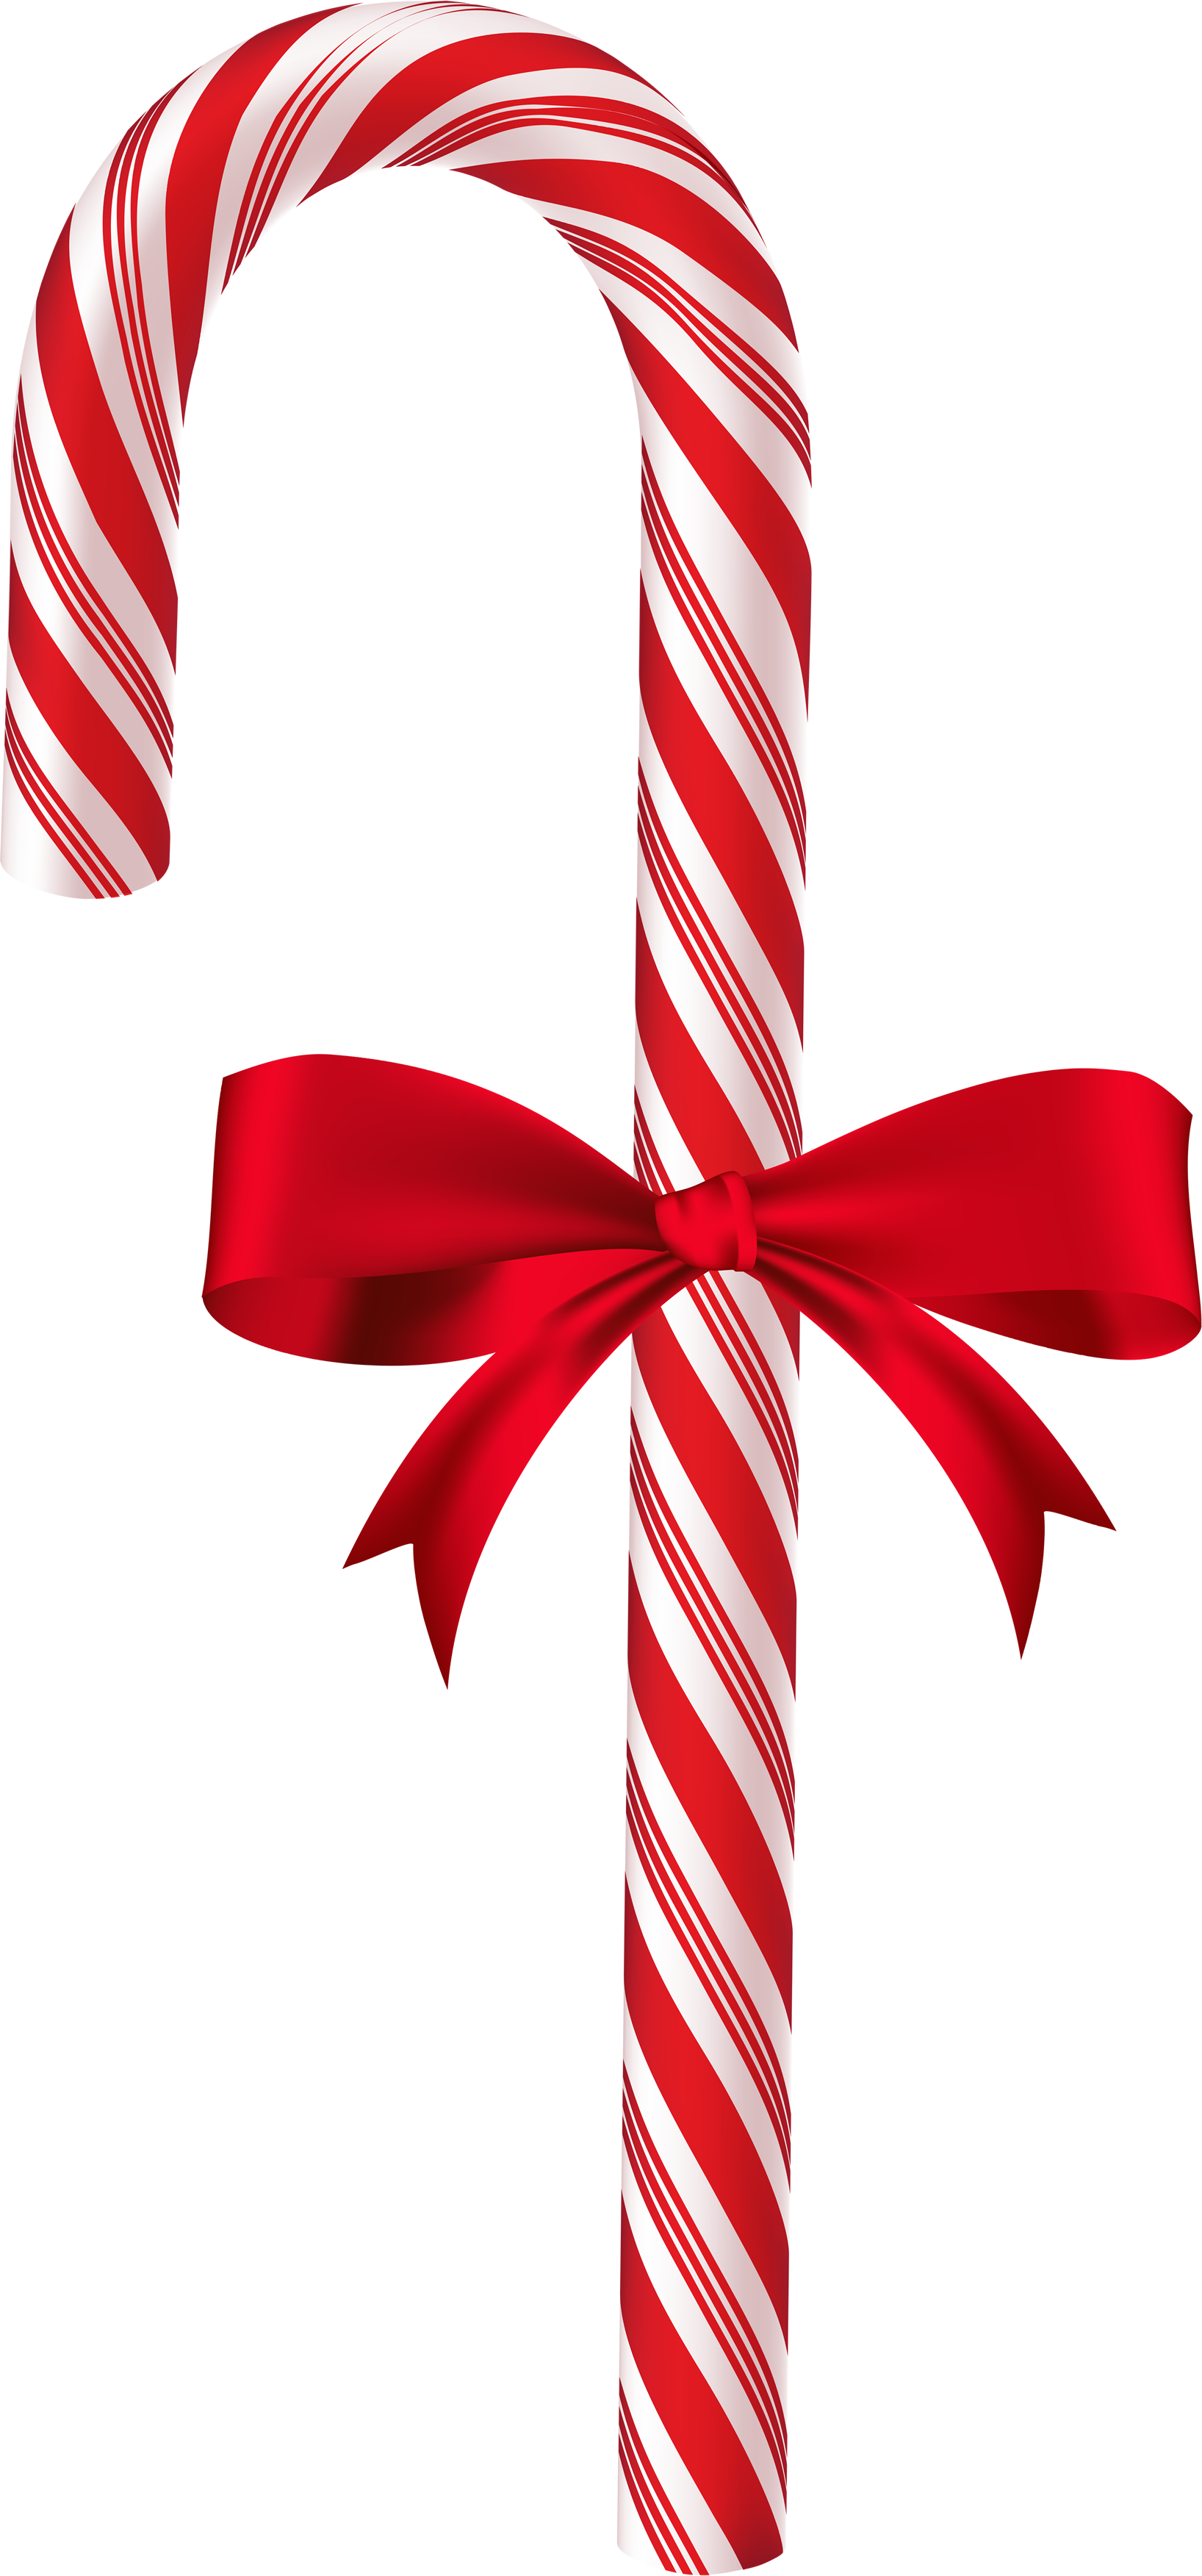 Real candy png. Christmas image purepng free